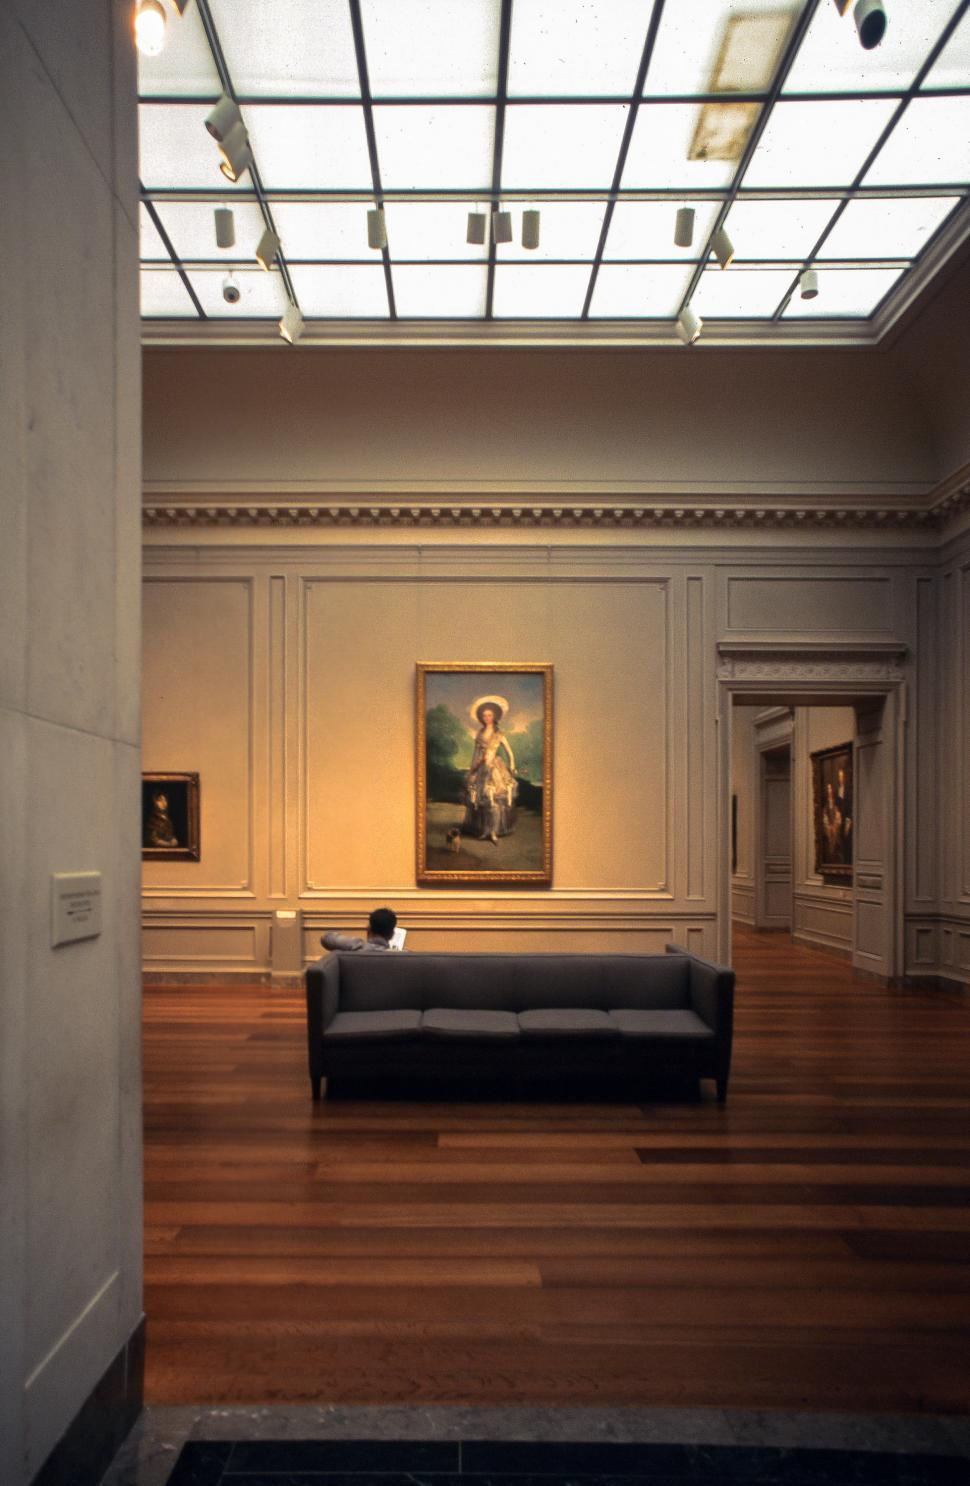 Download Free Stock HD Photo of National Art gallery Online